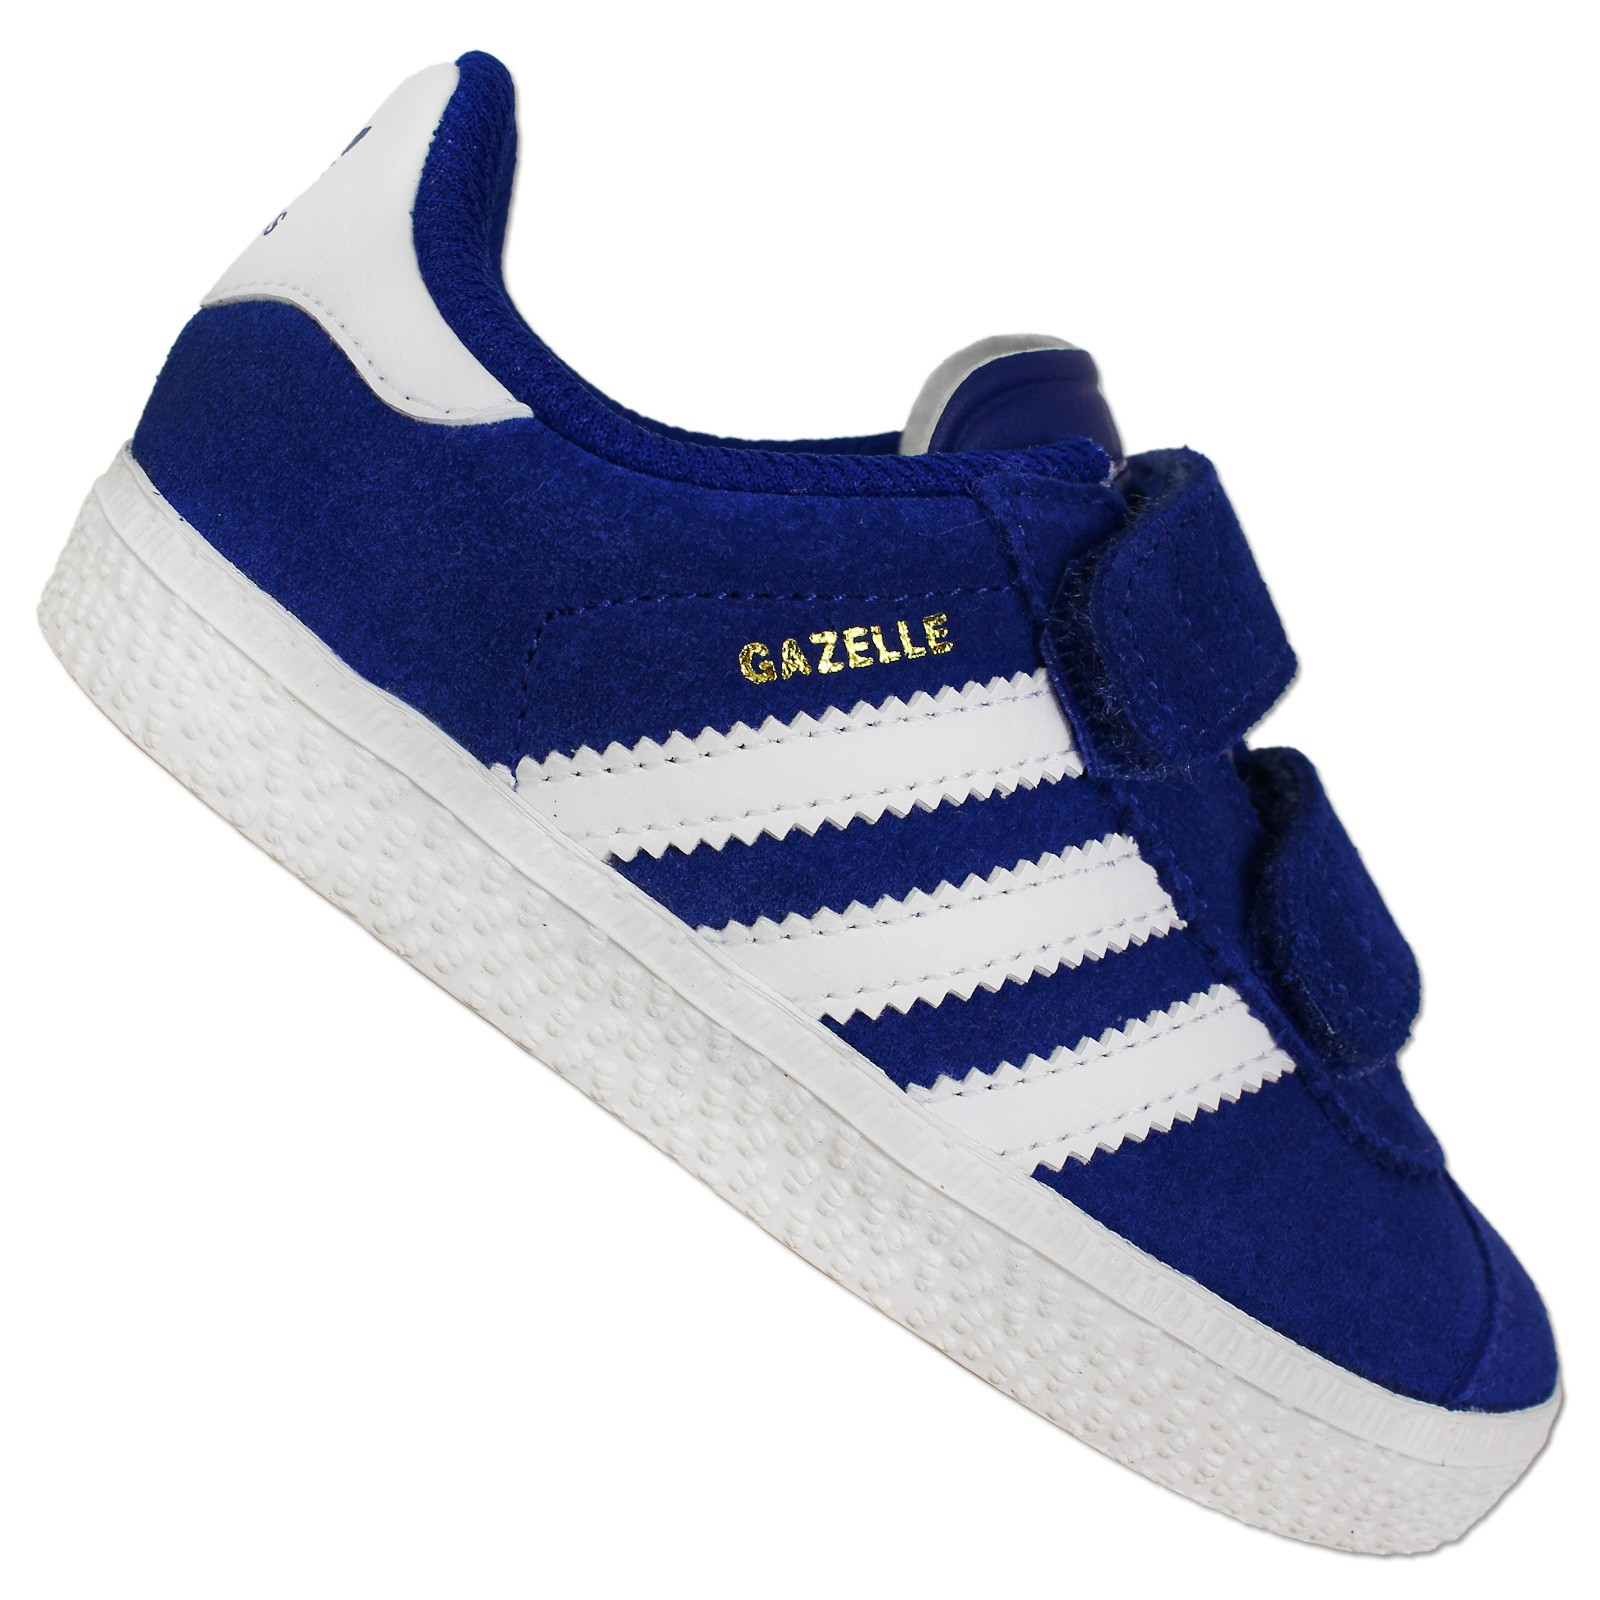 buy popular dfaf4 d3ab3 Details about Adidas Originals Gazelle 2 II Children s Sneakers Wild  Leather Shoes Blue White